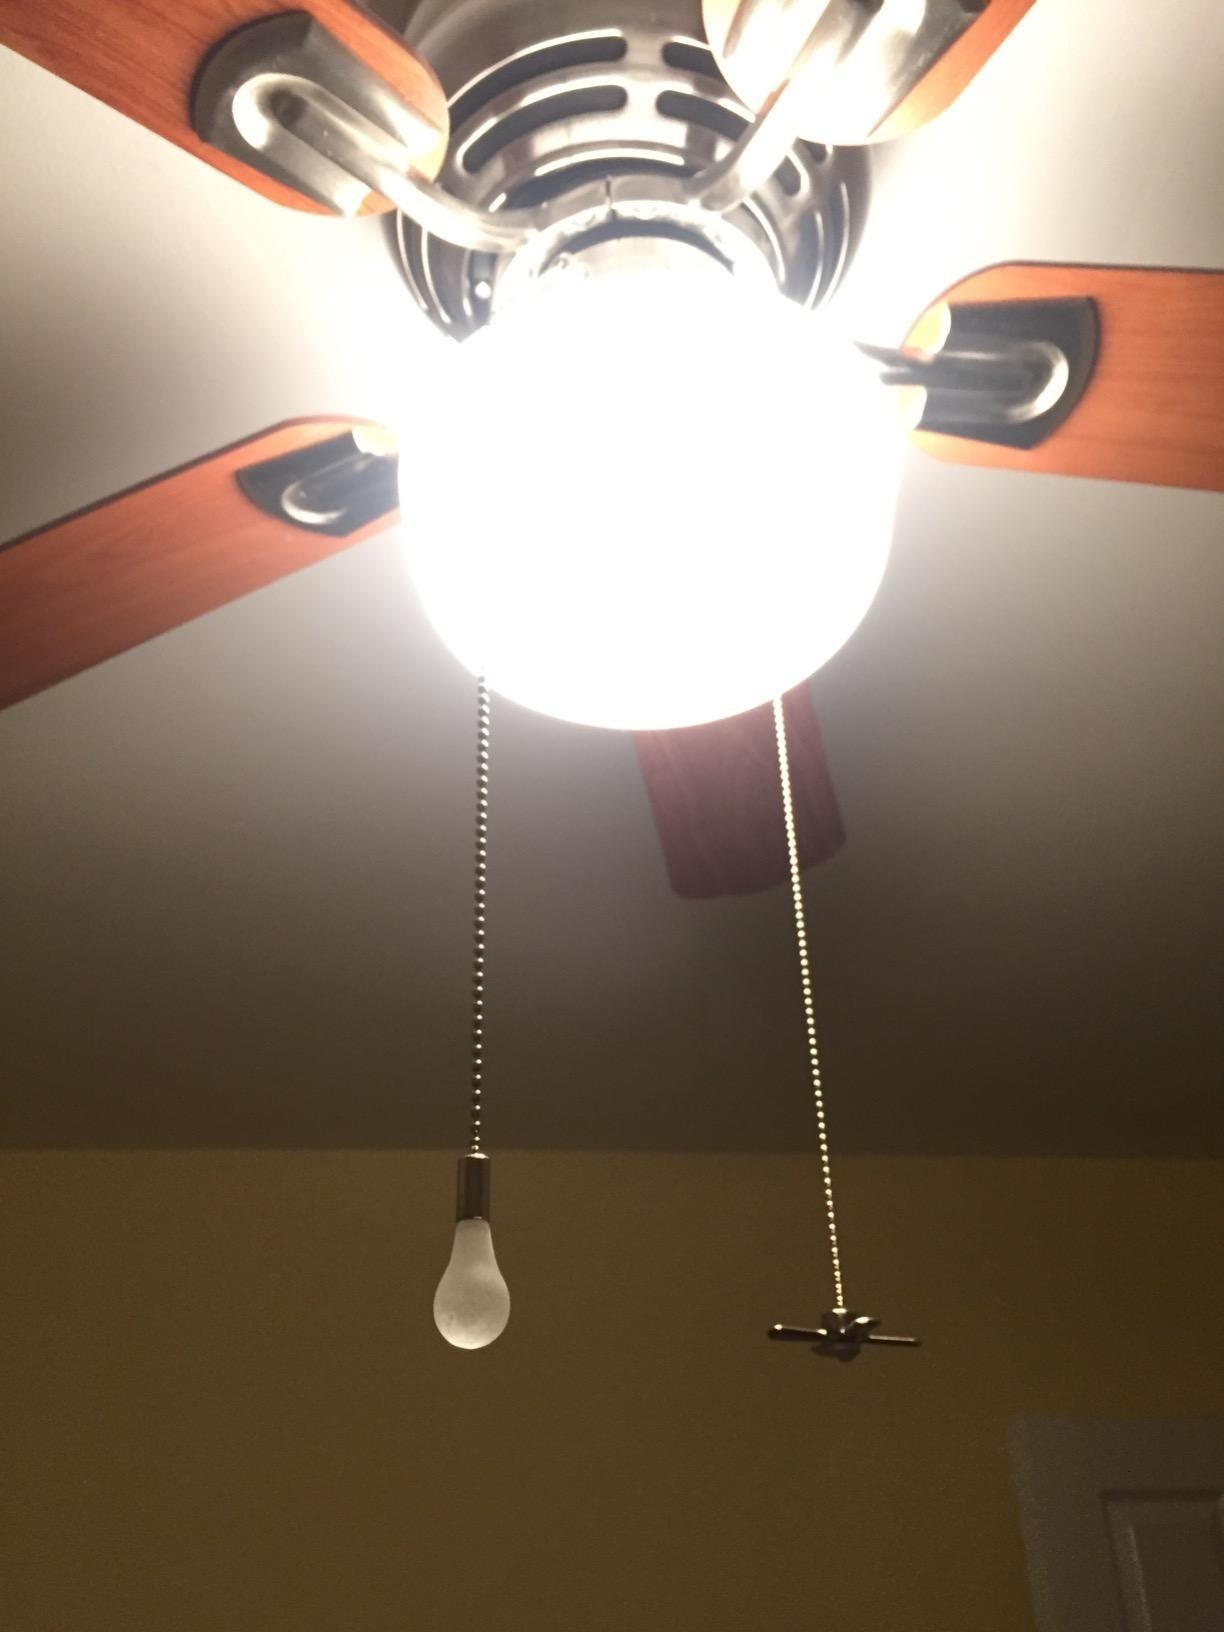 two chains with charms shaped like a lightbulb and fan